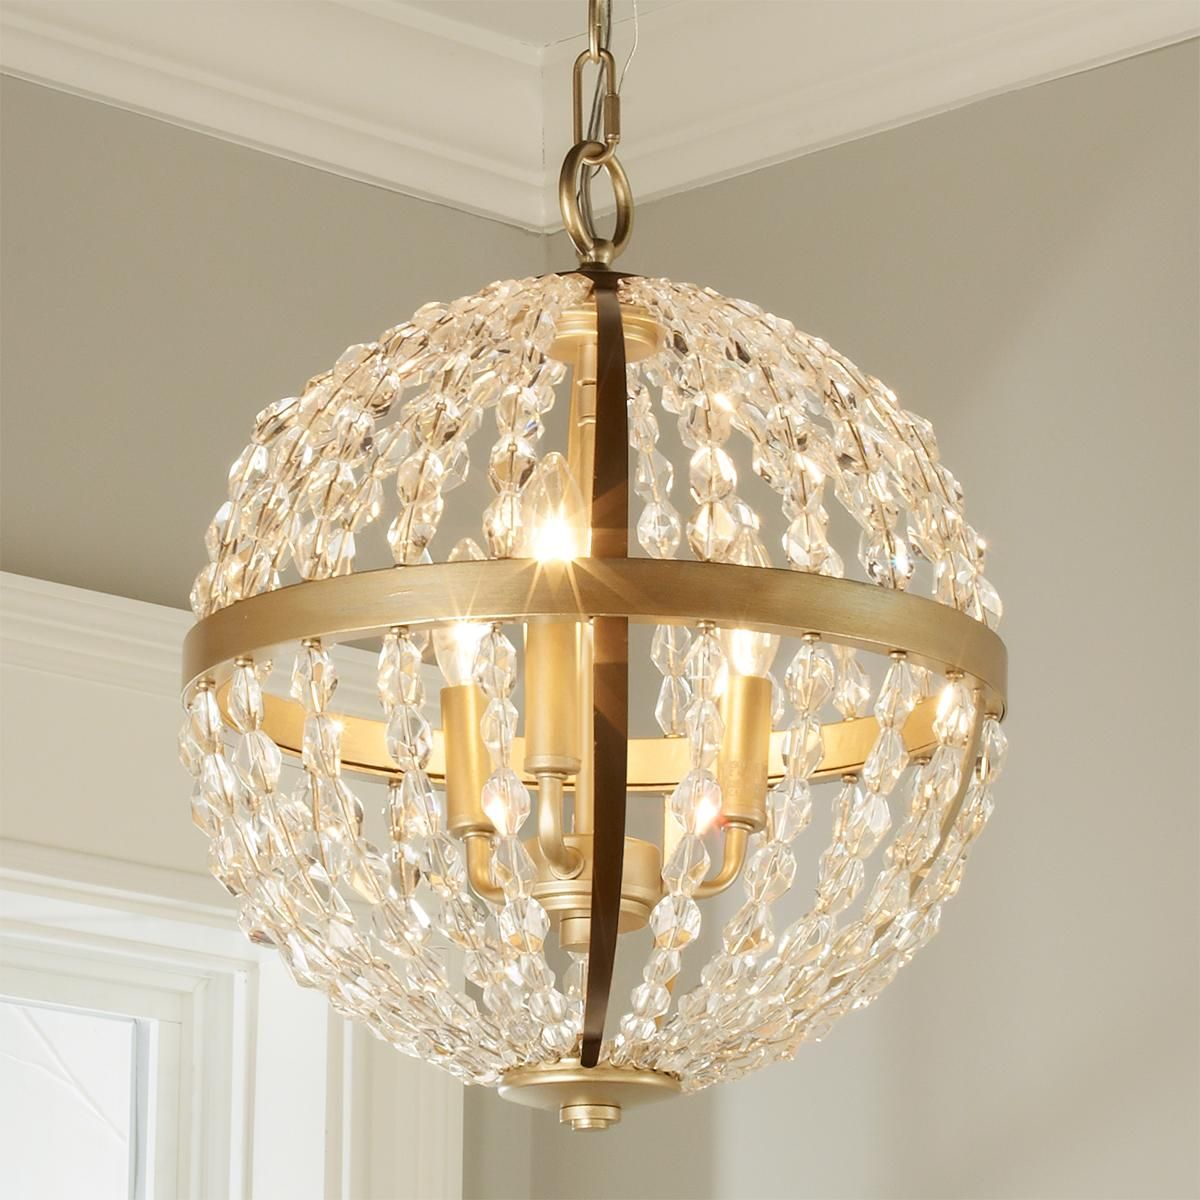 Crystal And Gold Globe Chandelier Small This Stunningly Glamorous Chandelier Features A Globe Of Soft Gold Metal Globe Chandelier Small Chandelier Gold Globe